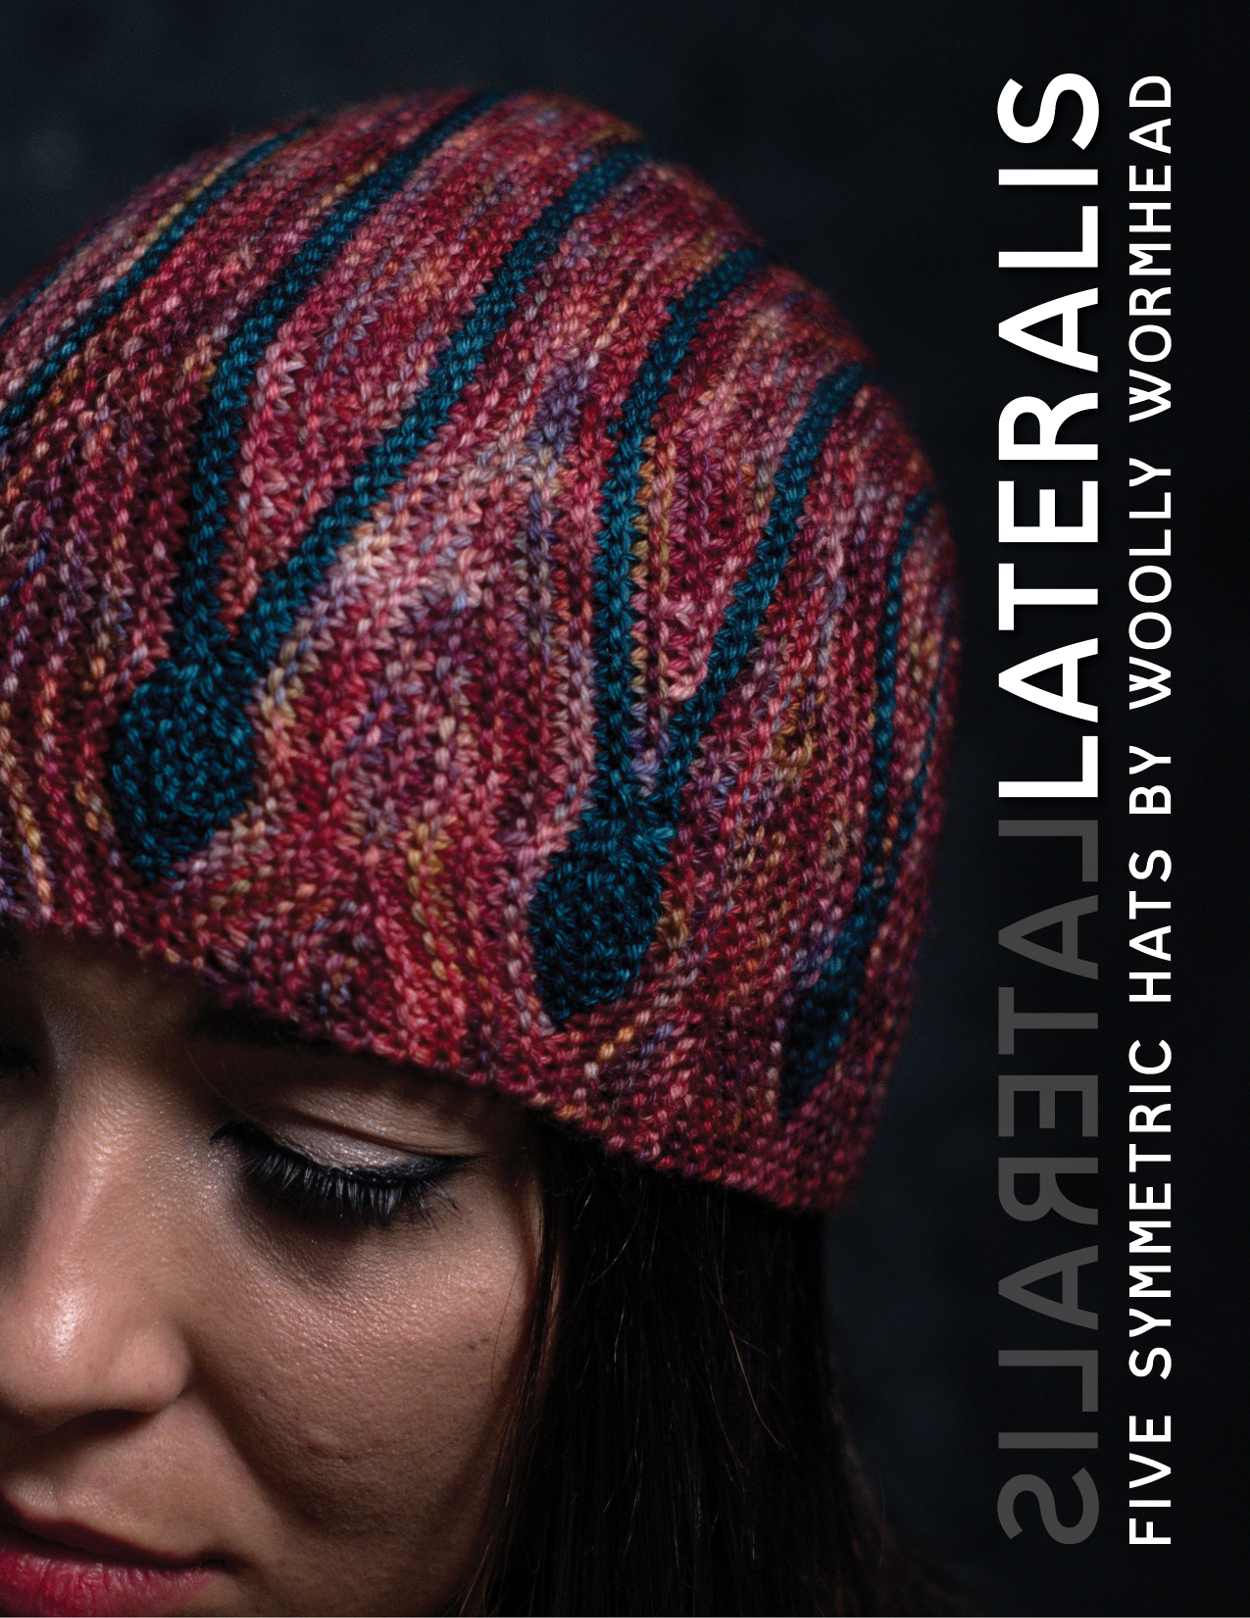 Lateralis special collection of sideways knit symmetrical hats